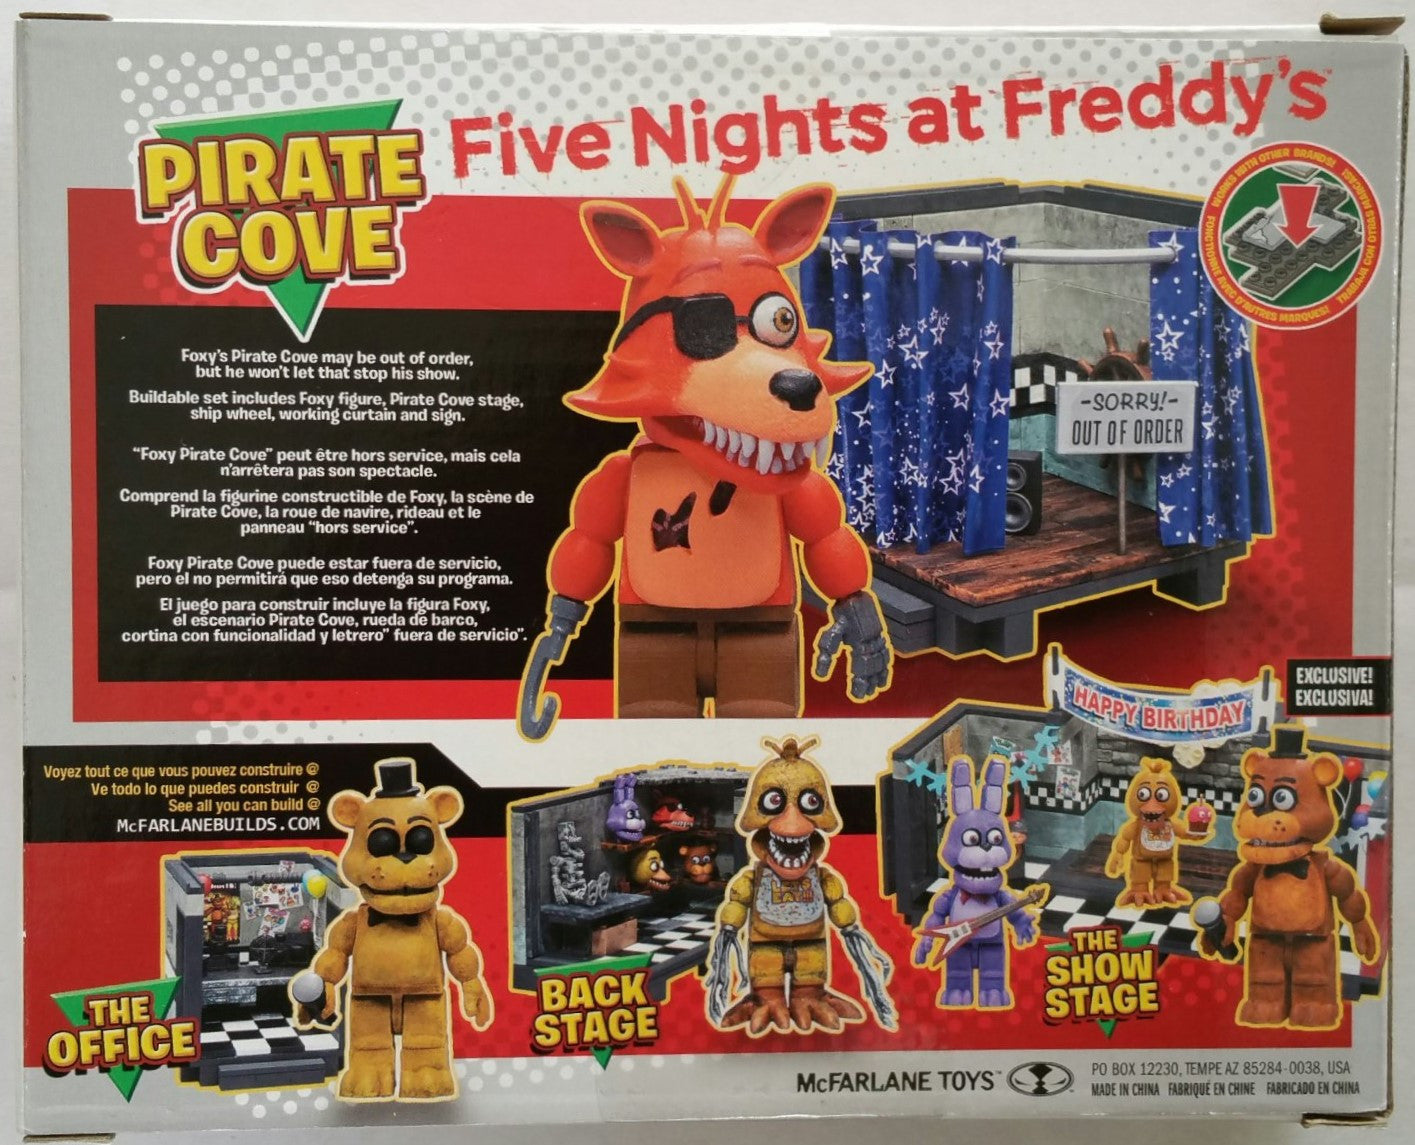 McFarlane Construction Set - Five Nights at Freddy's Pirate Cove with Foxy Figure (12032)